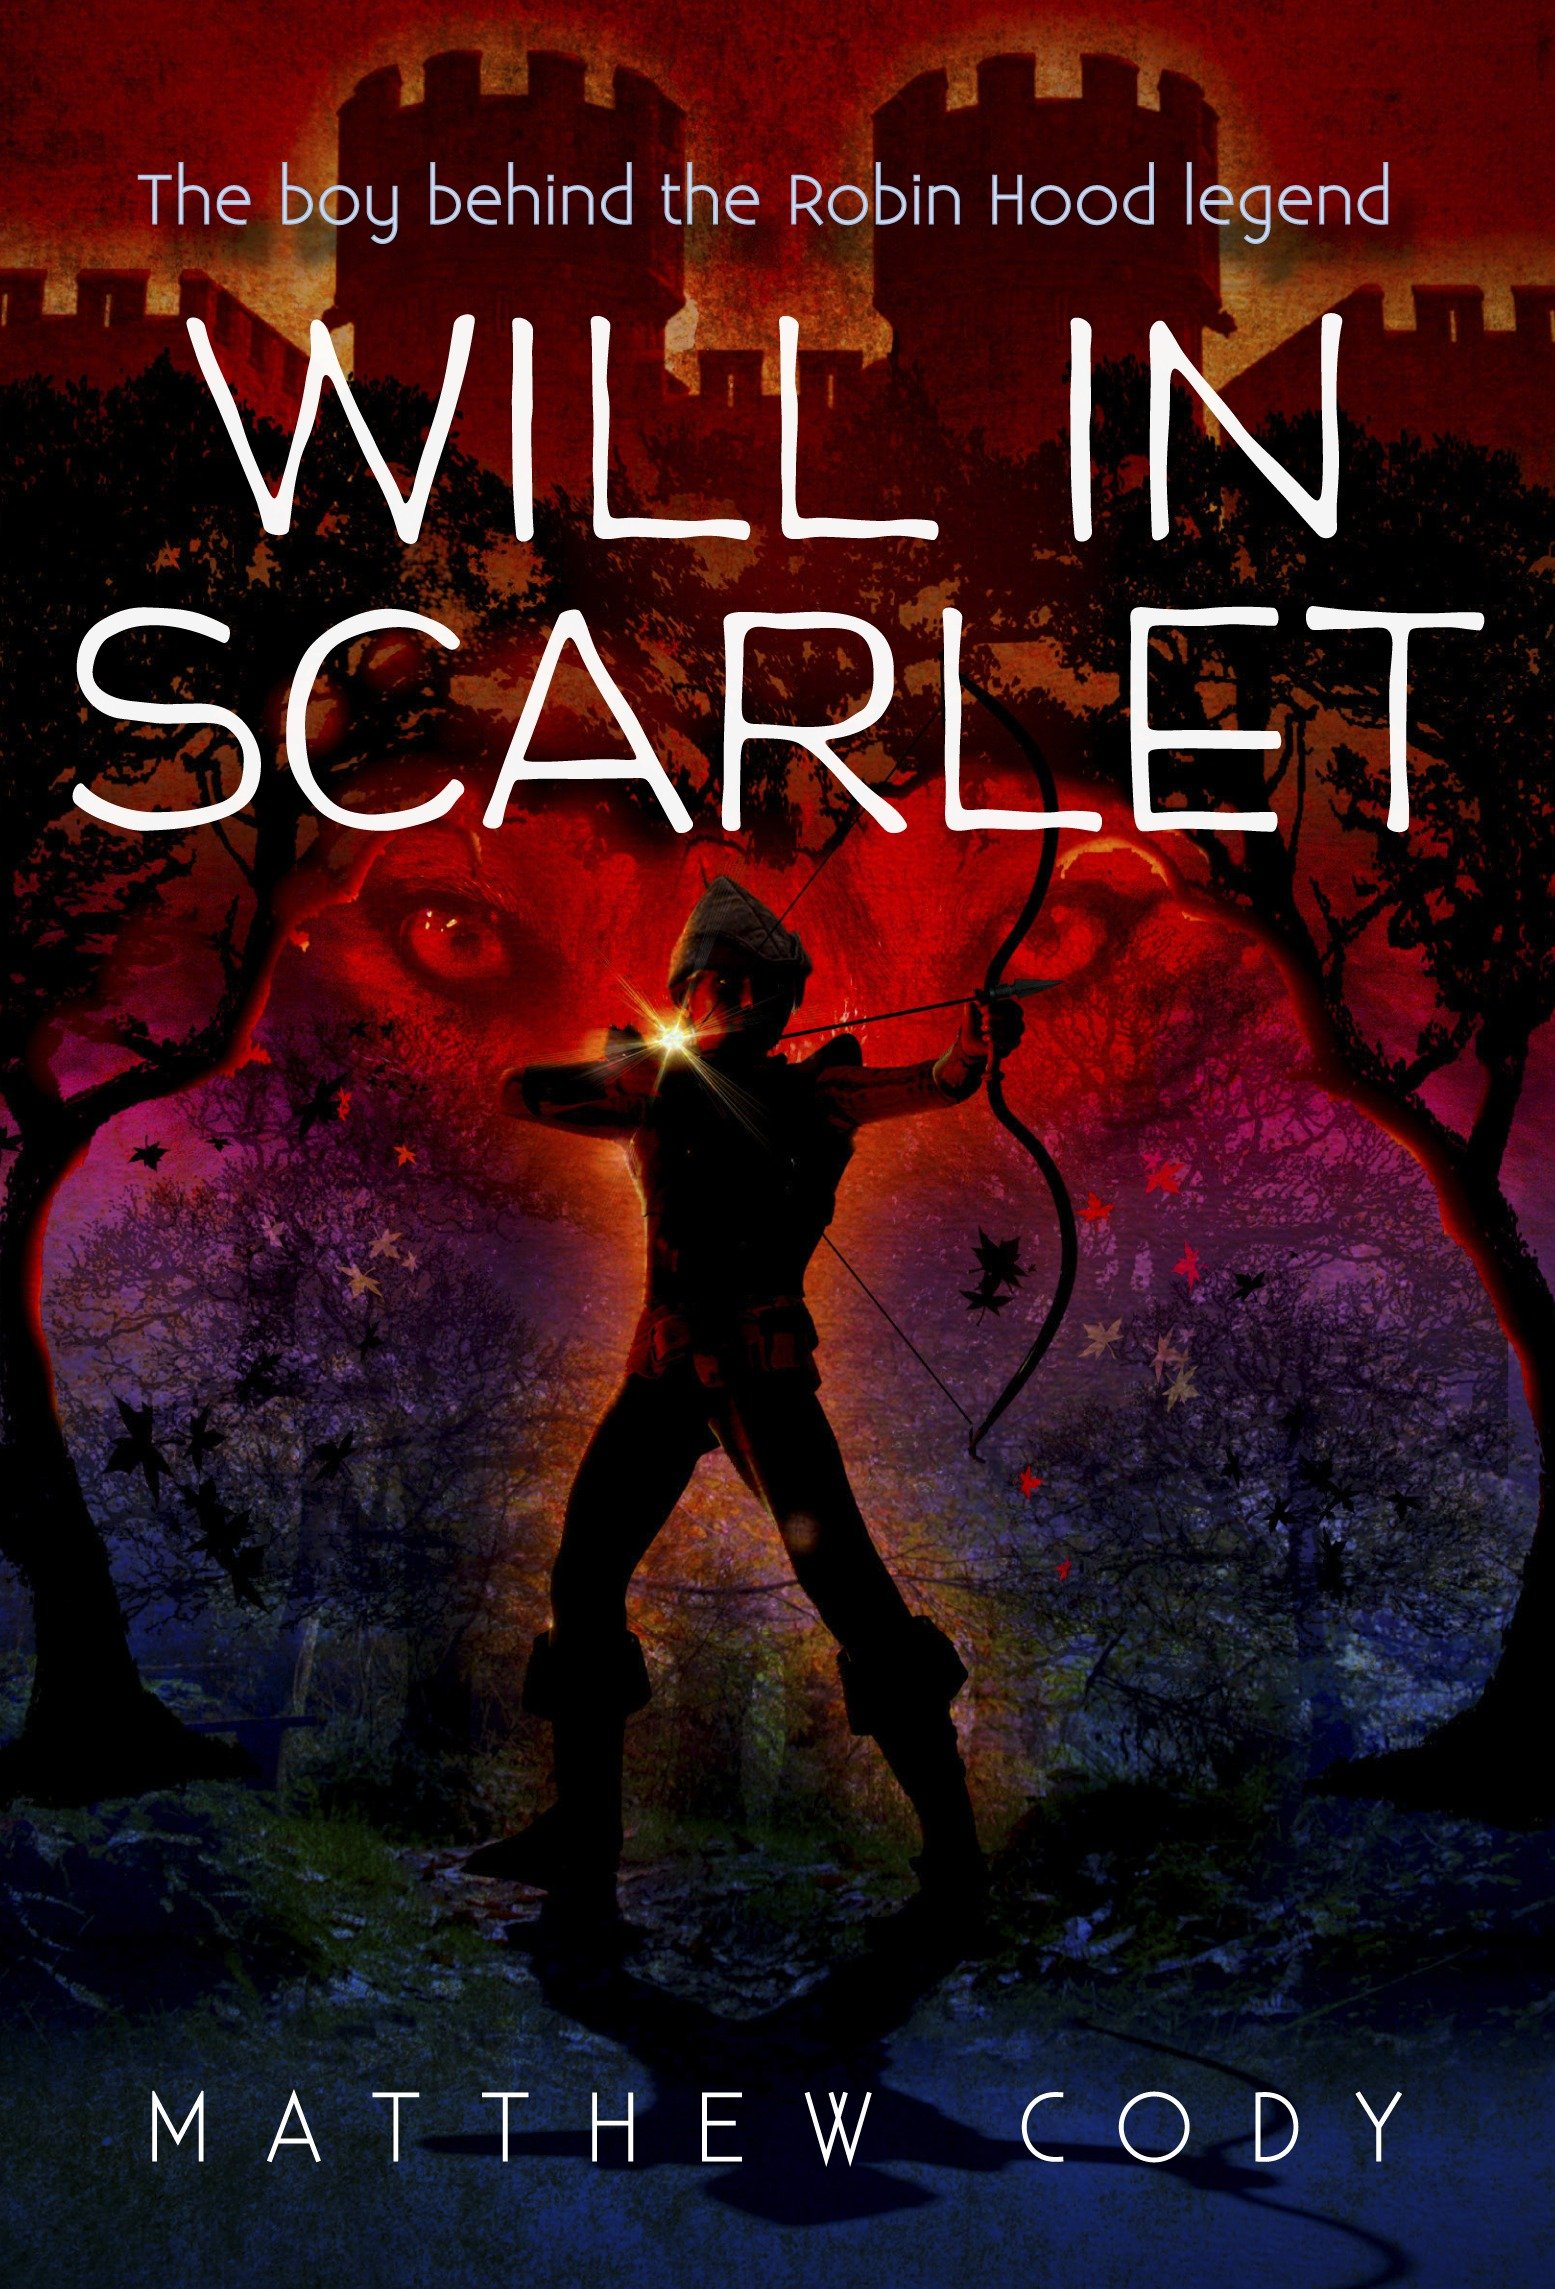 Will in scarlet cover image